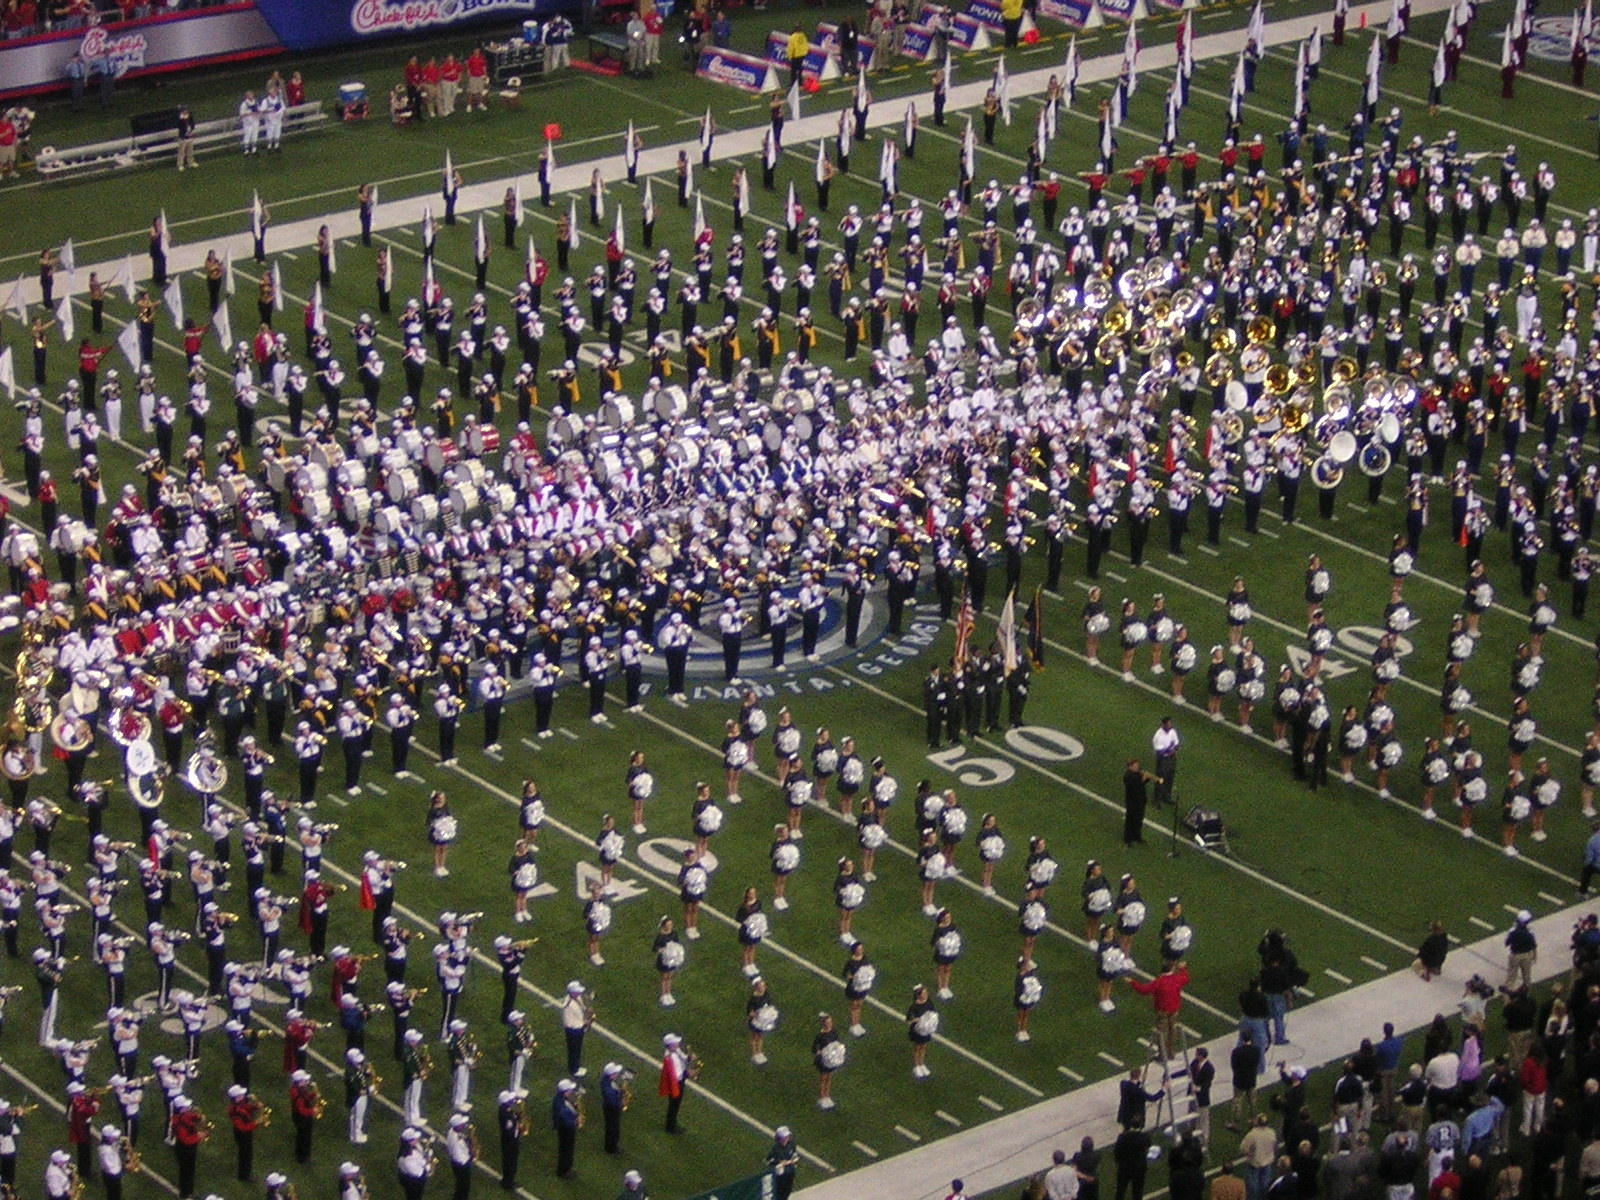 File:Marching band halftime 2006 CFA Bowl.jpg - Wikimedia Commons